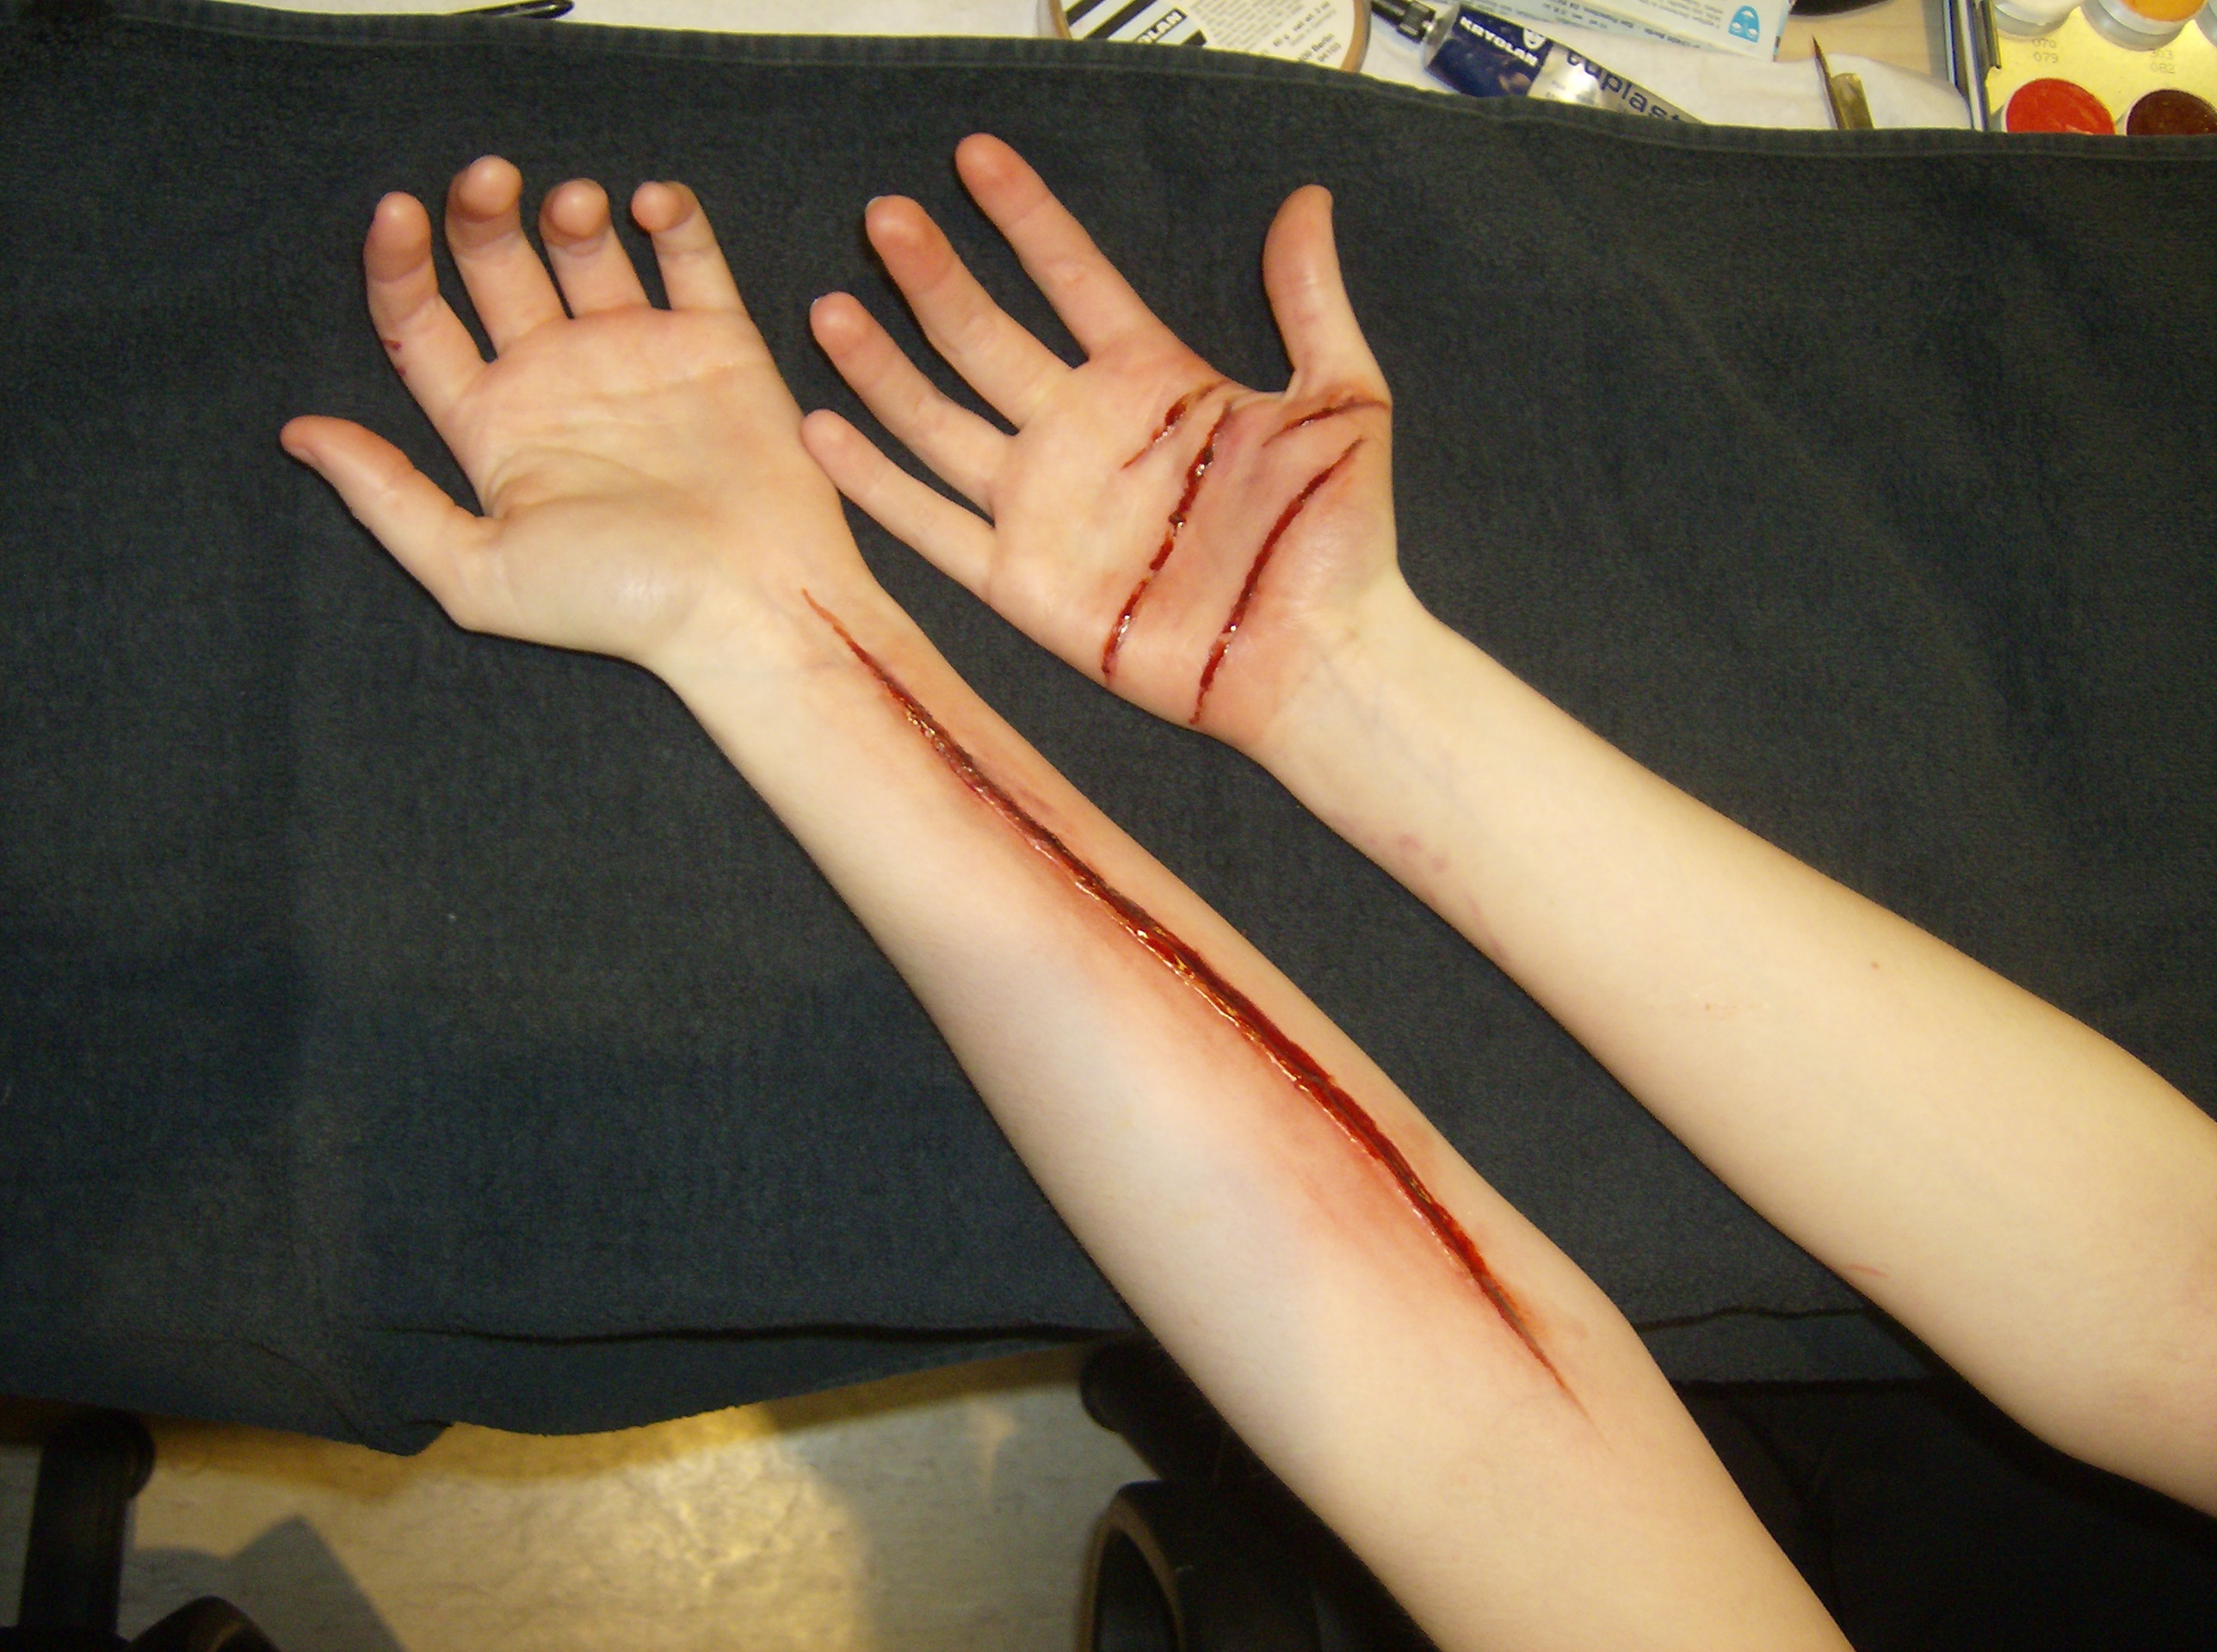 cut up hands and sliced arm by rosiedraper on deviantart